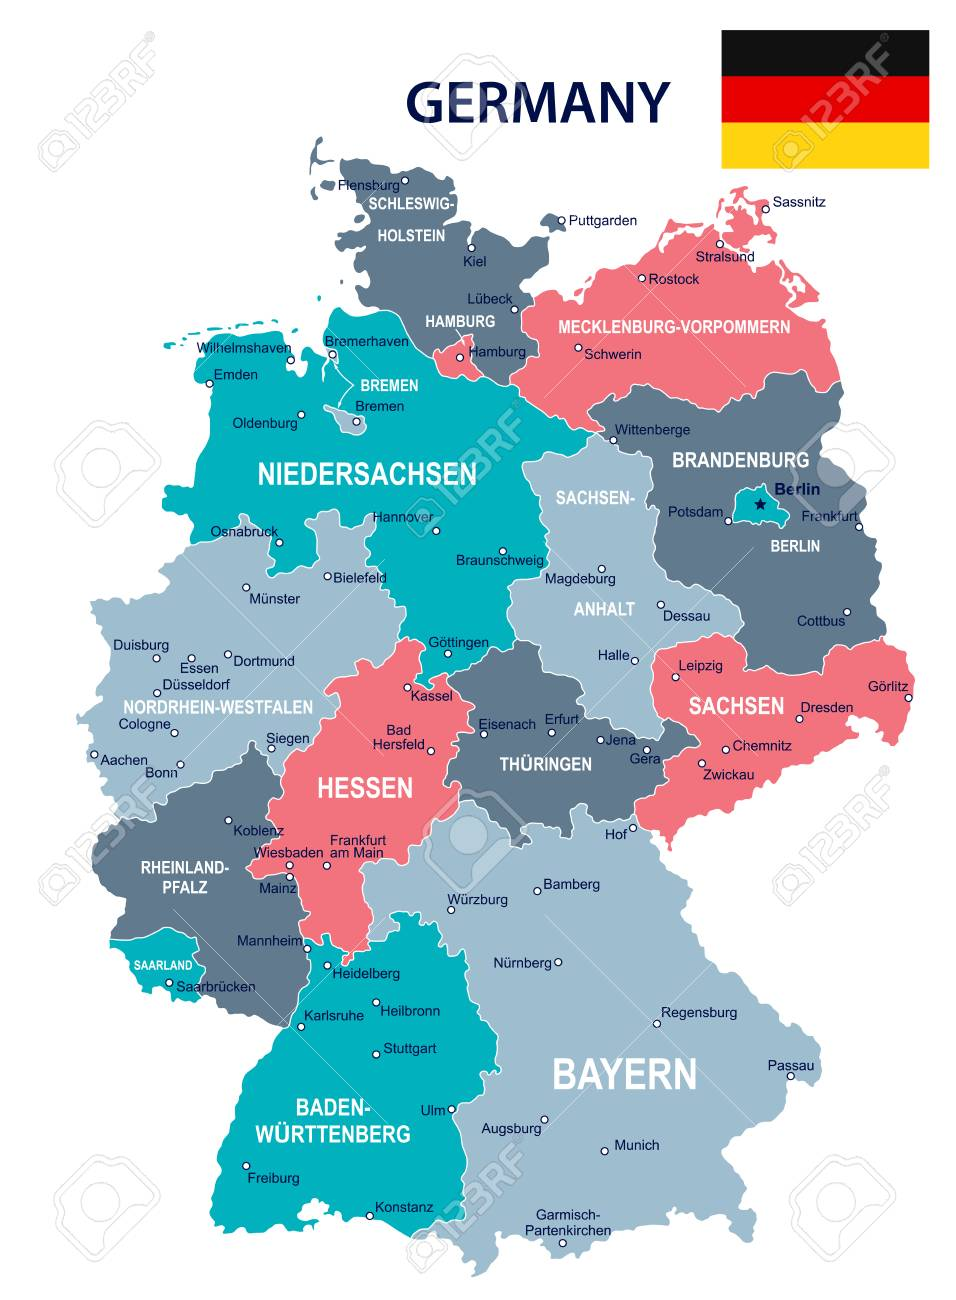 Germany Map And Flag Vector Illustration Royalty Free Cliparts